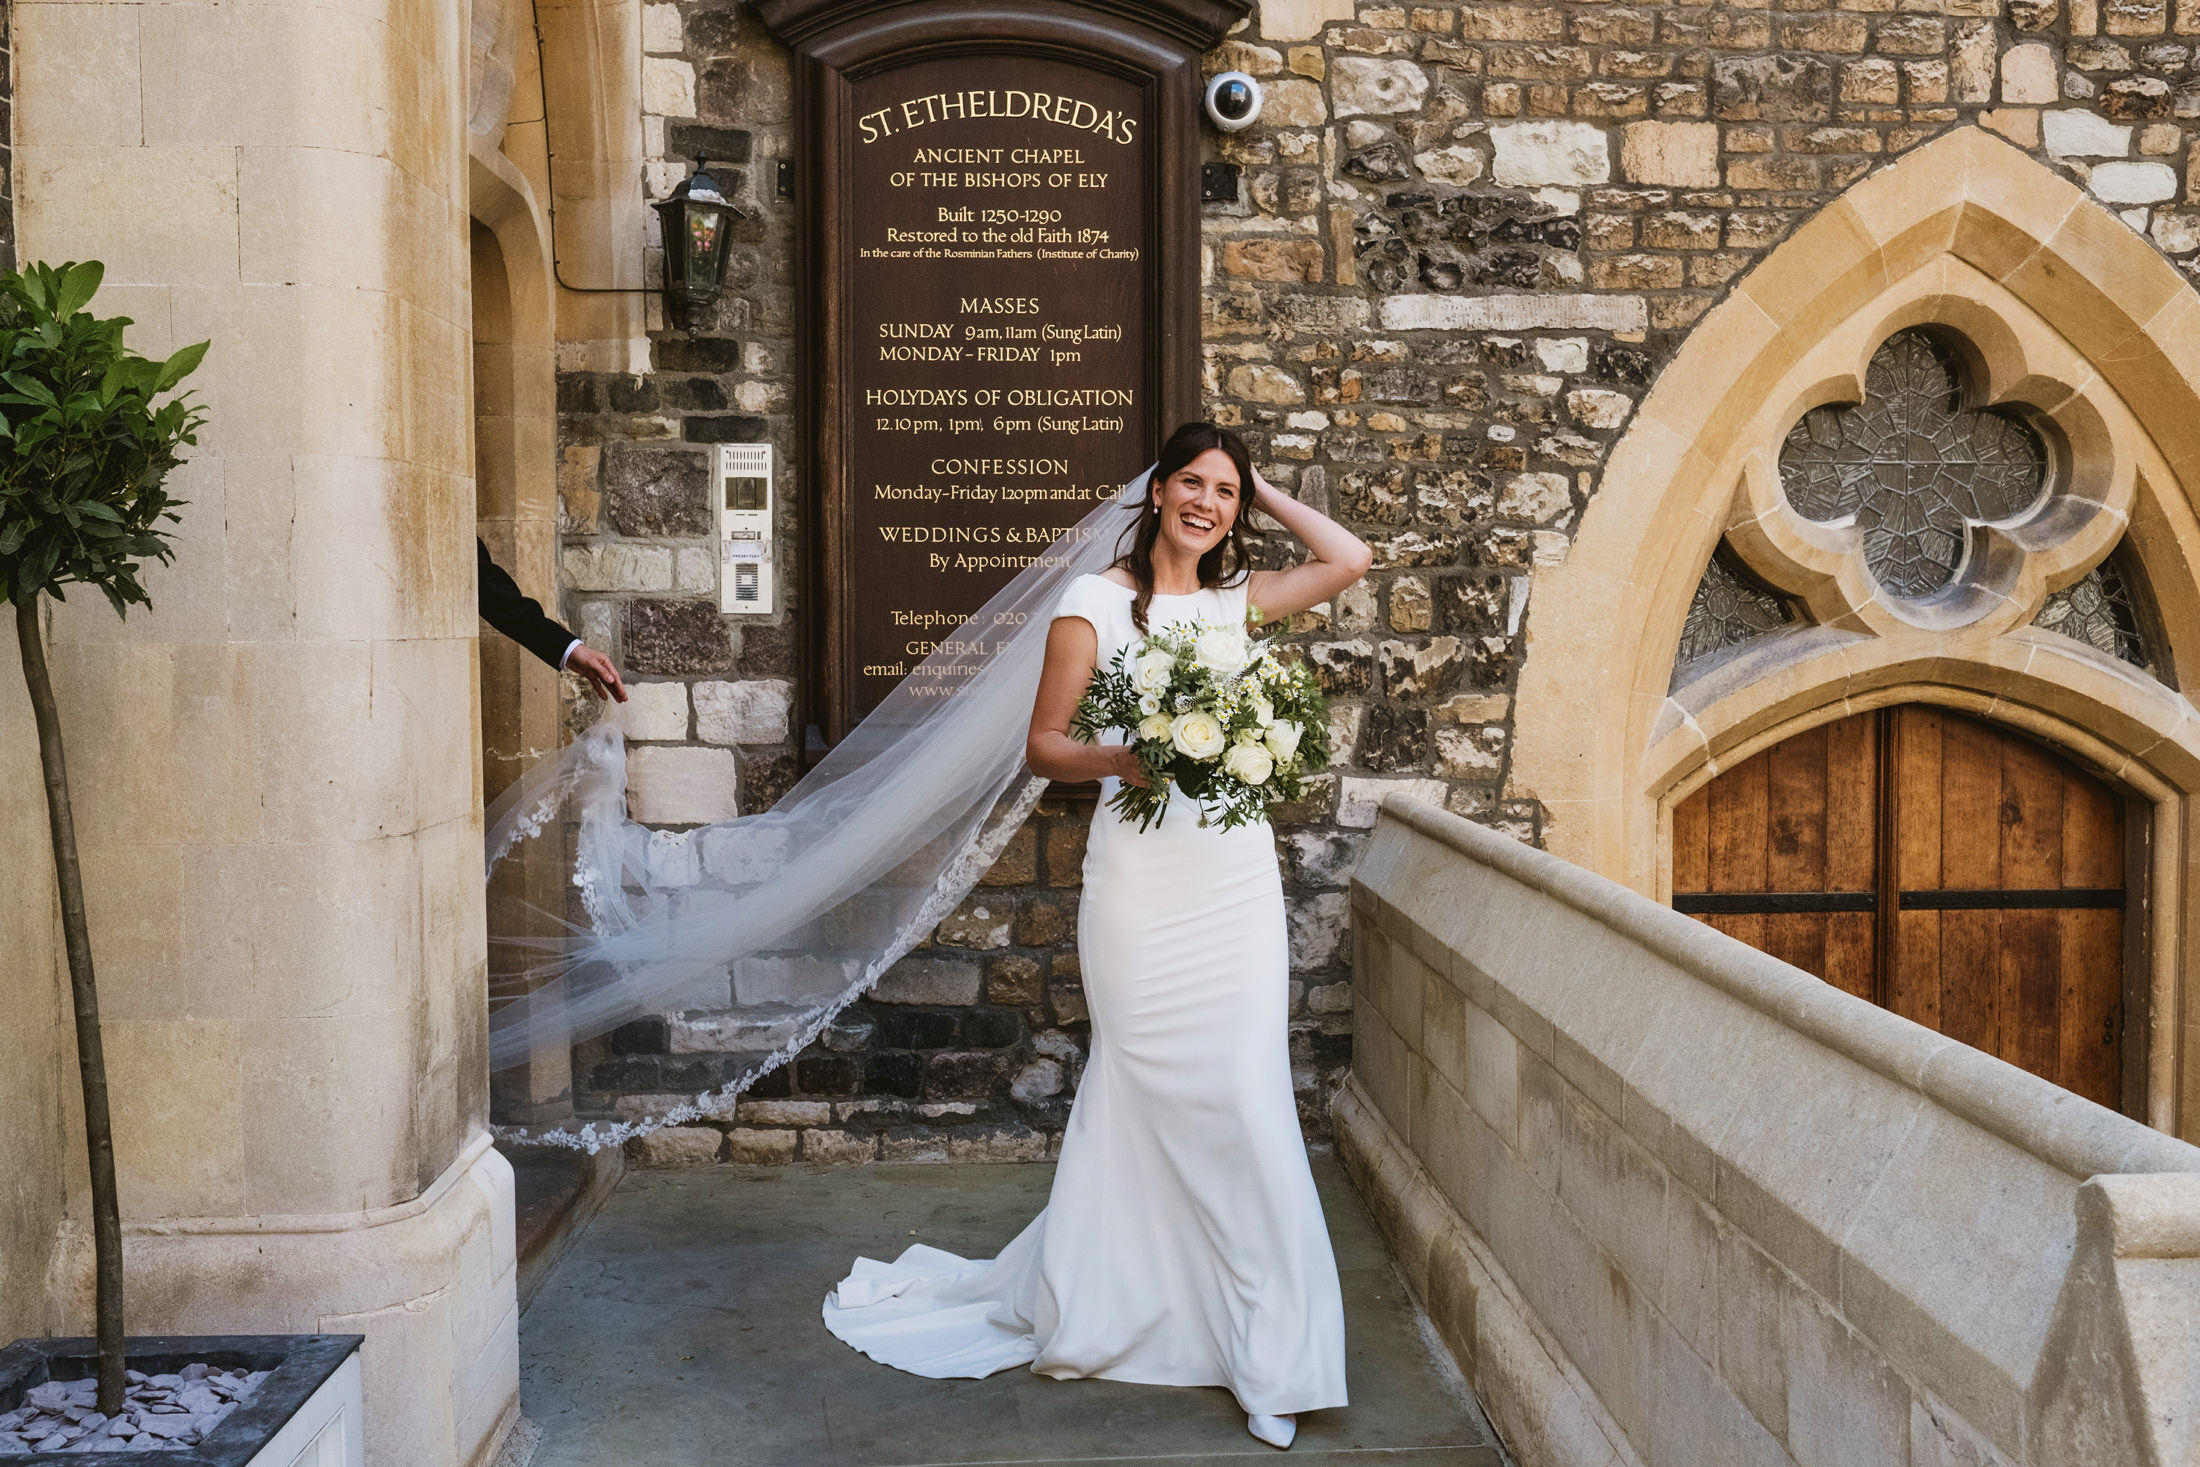 Smiling bride emerges from a London church. Holding the end of her veil is the arm of an unseen figure through the doorway.